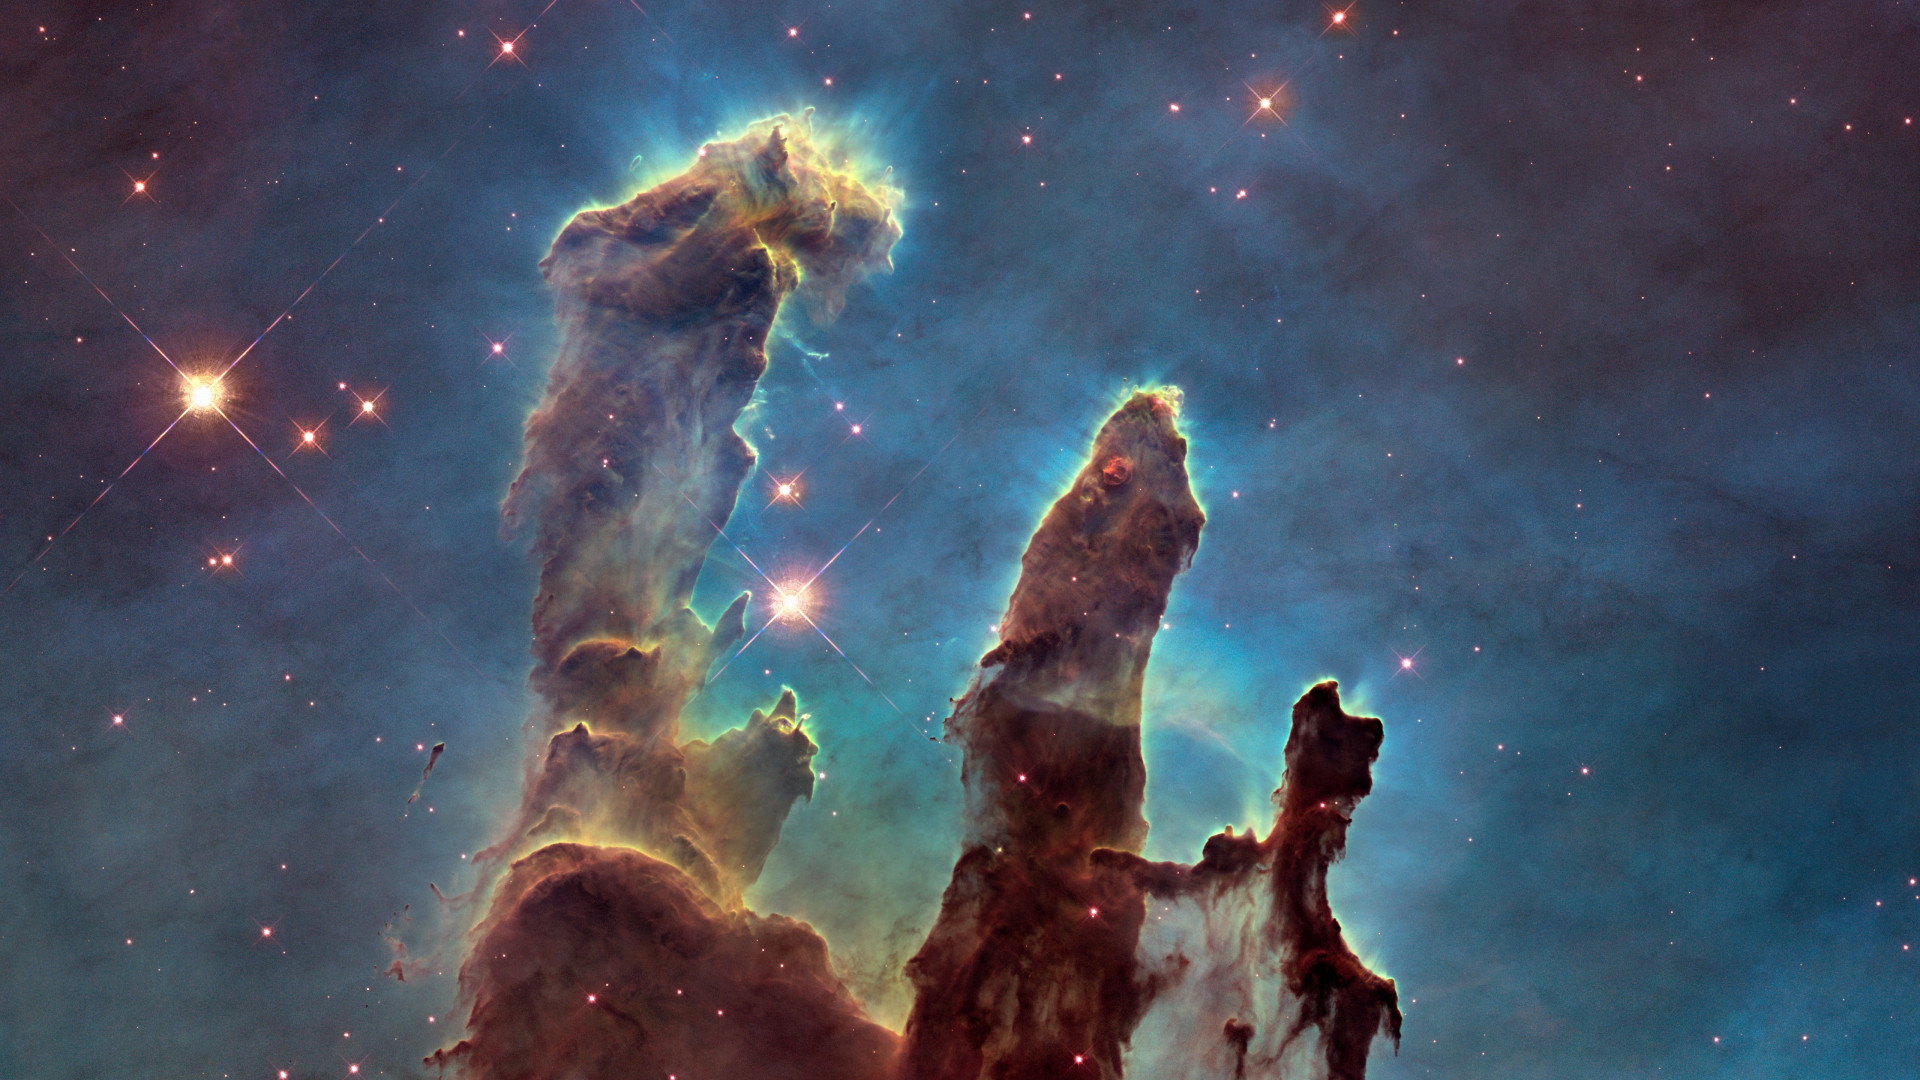 The Eagle Nebula's Pillars of Creation wallpaper 1920x1080